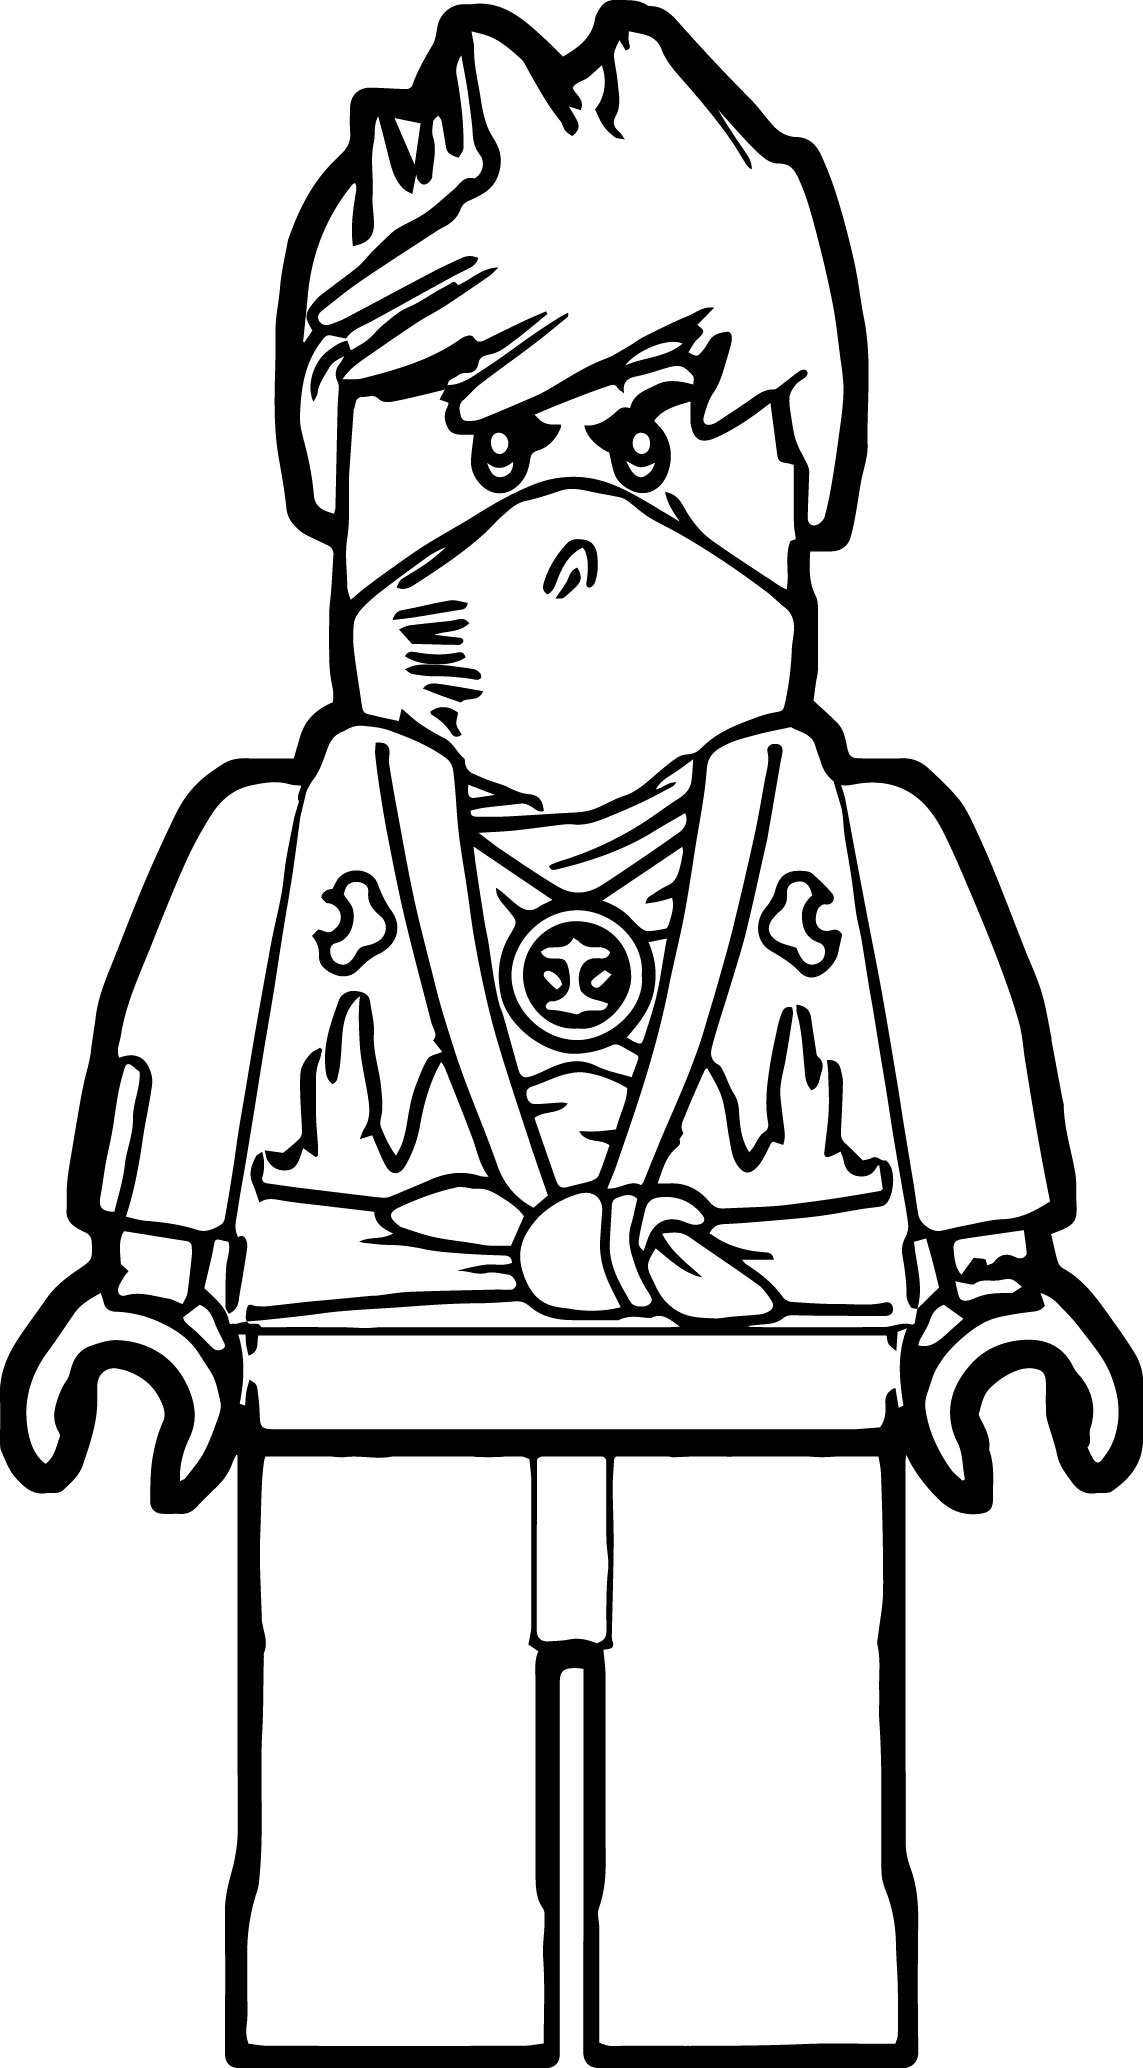 lego colouring in pictures lego star wars coloring pages to download and print for free colouring lego pictures in